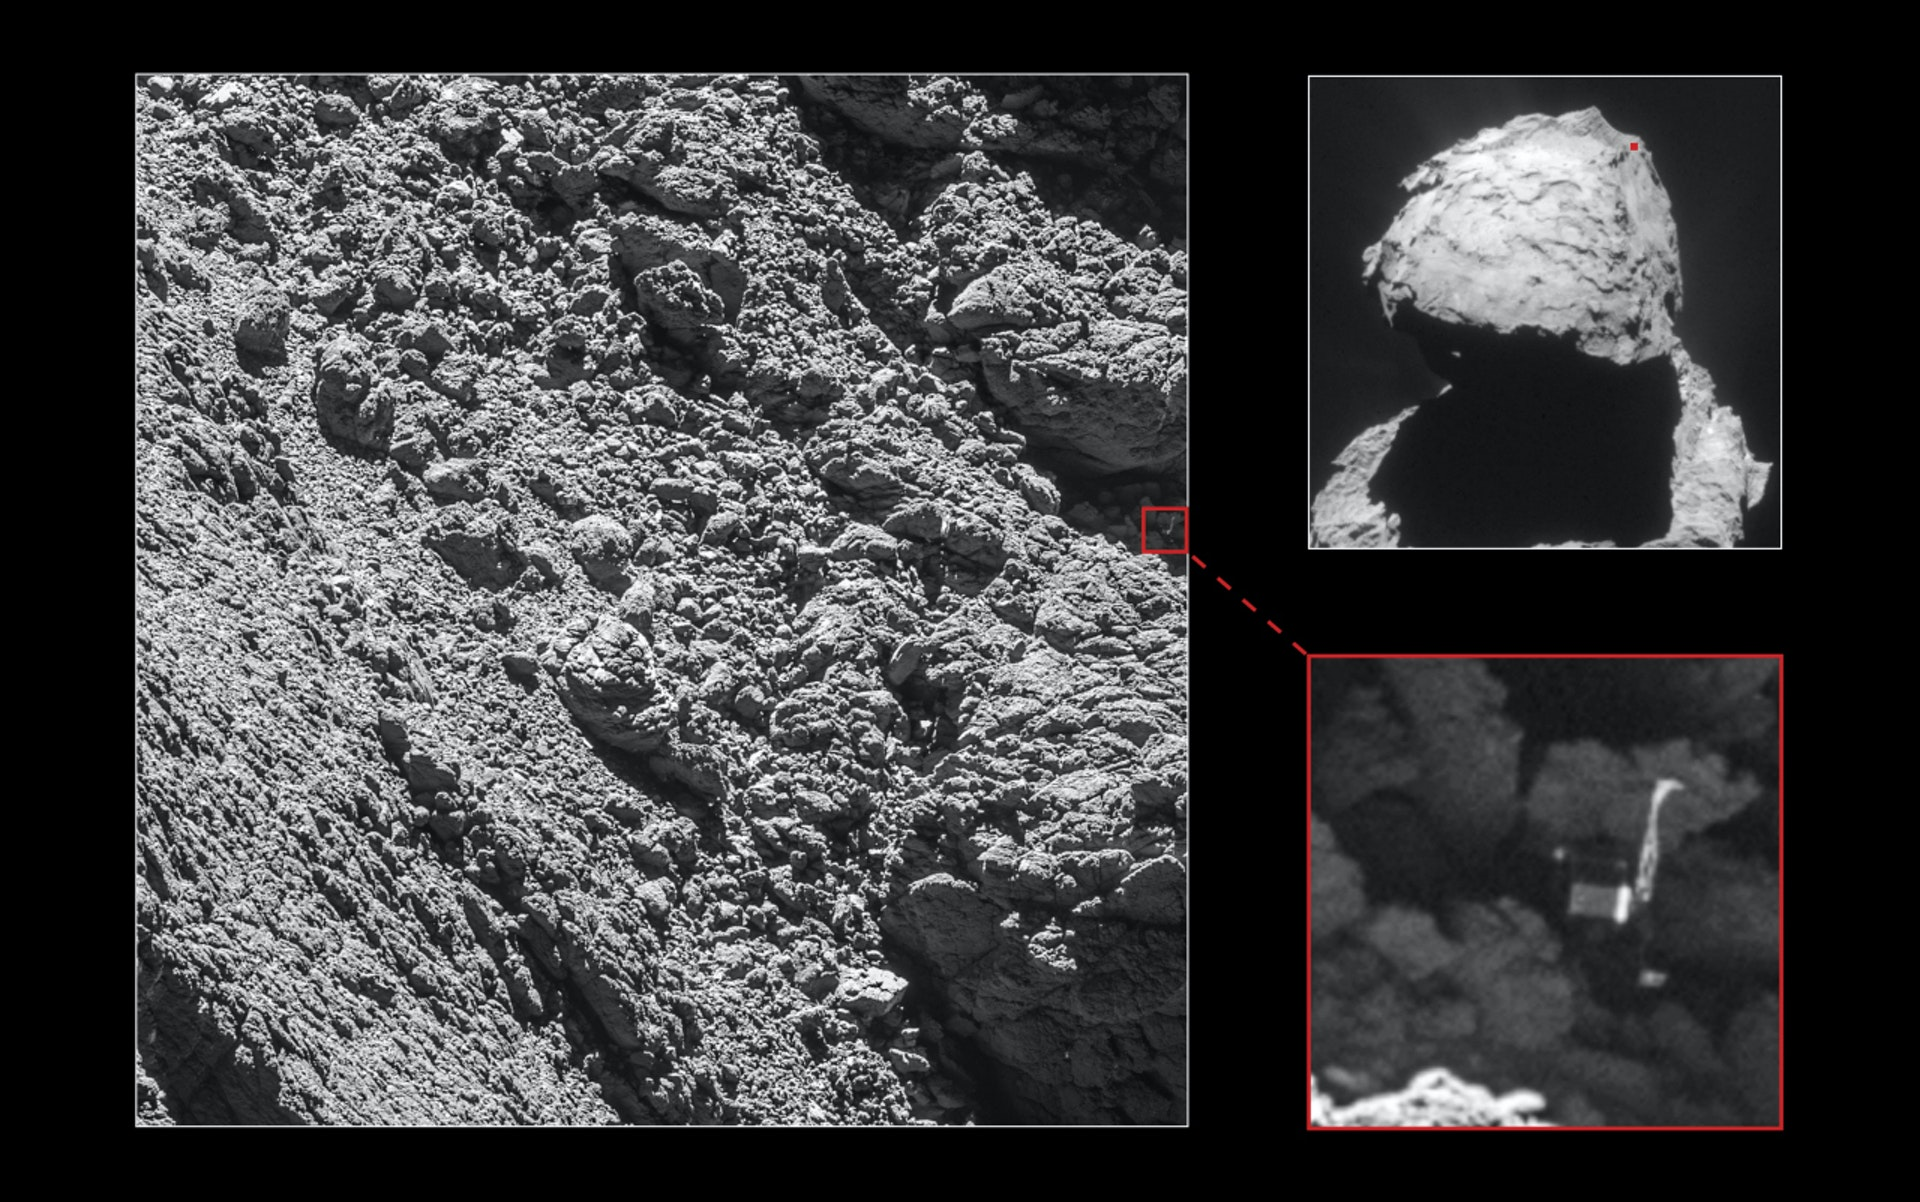 Can you spot it? The Rosetta mission's Philae lander hides in a crevasse on Comet 67P/Churyumov-Gerasimenko's surface, where scarce sunlight hindered solar powered equipment.